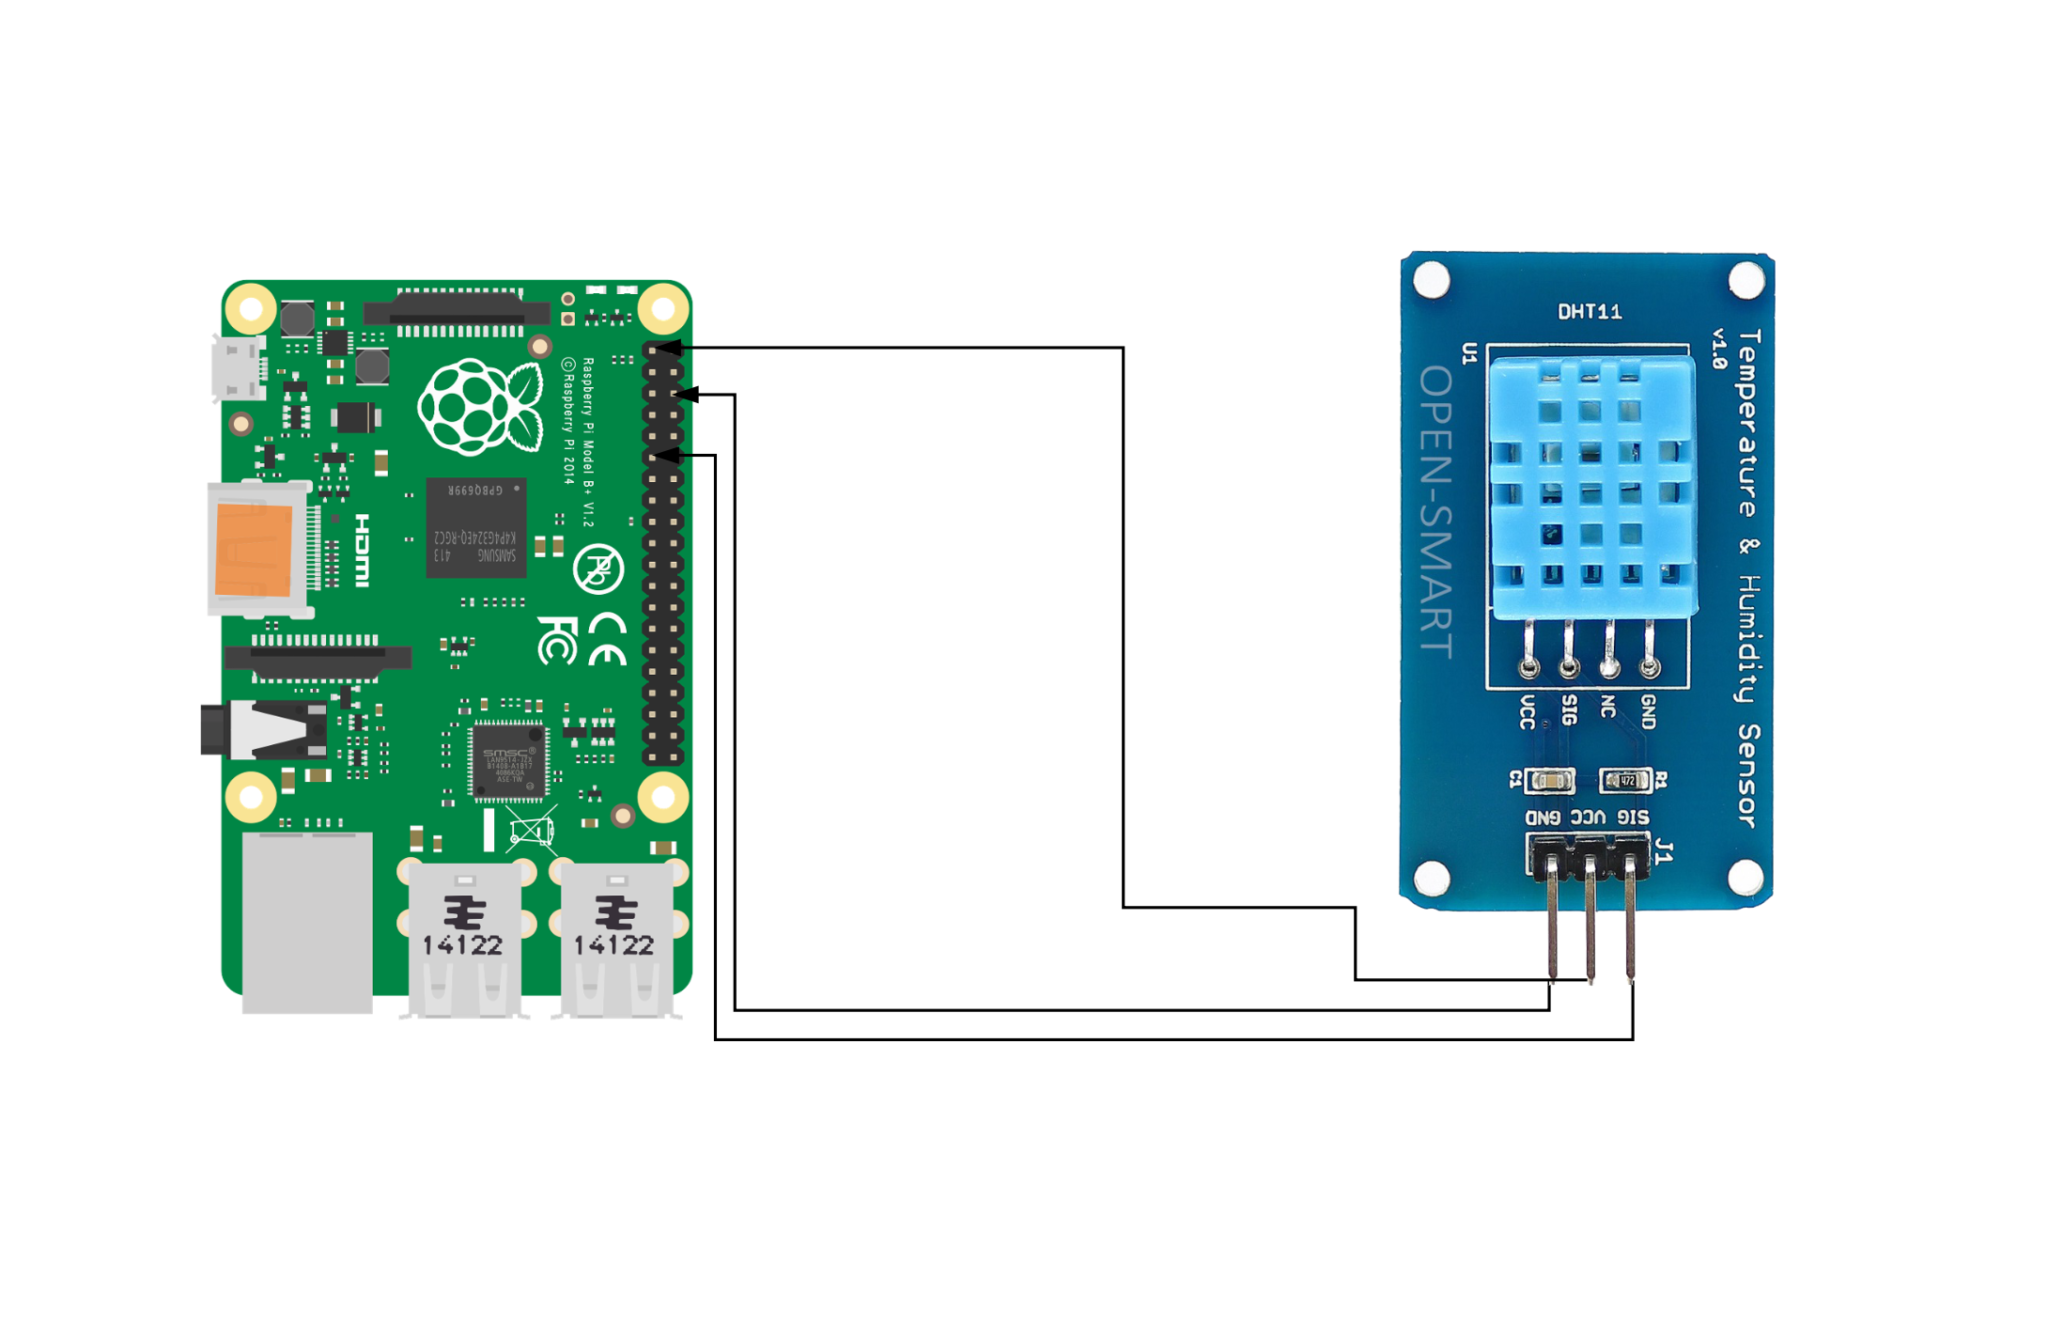 Raspberry Pi Based Iot Project Connecting Dht11 Sensor Wiringpi Html And Connection Diagram